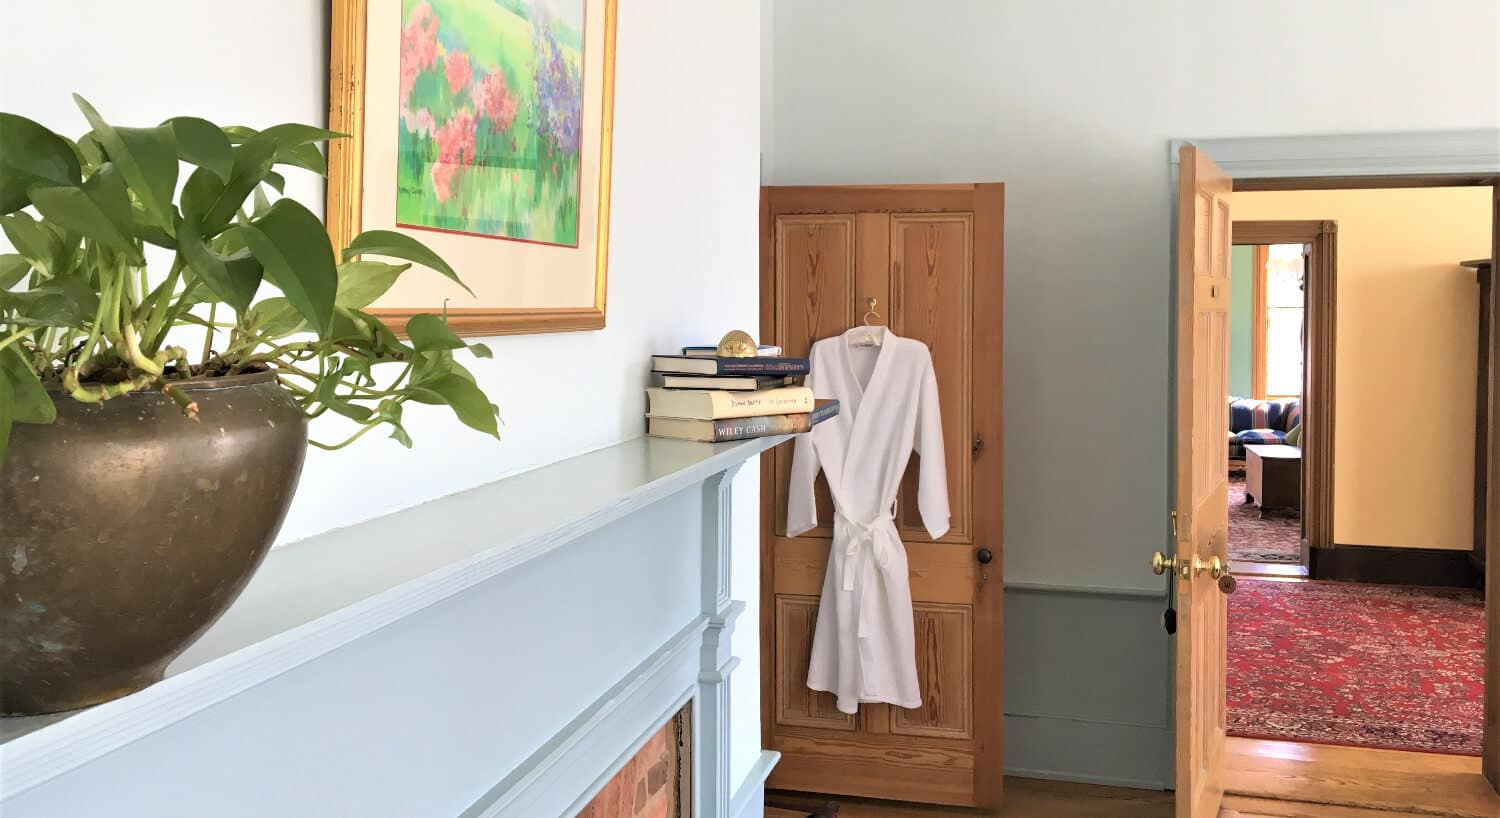 Fireplace mantel of grey panyed wood and door with a fluffy white robe